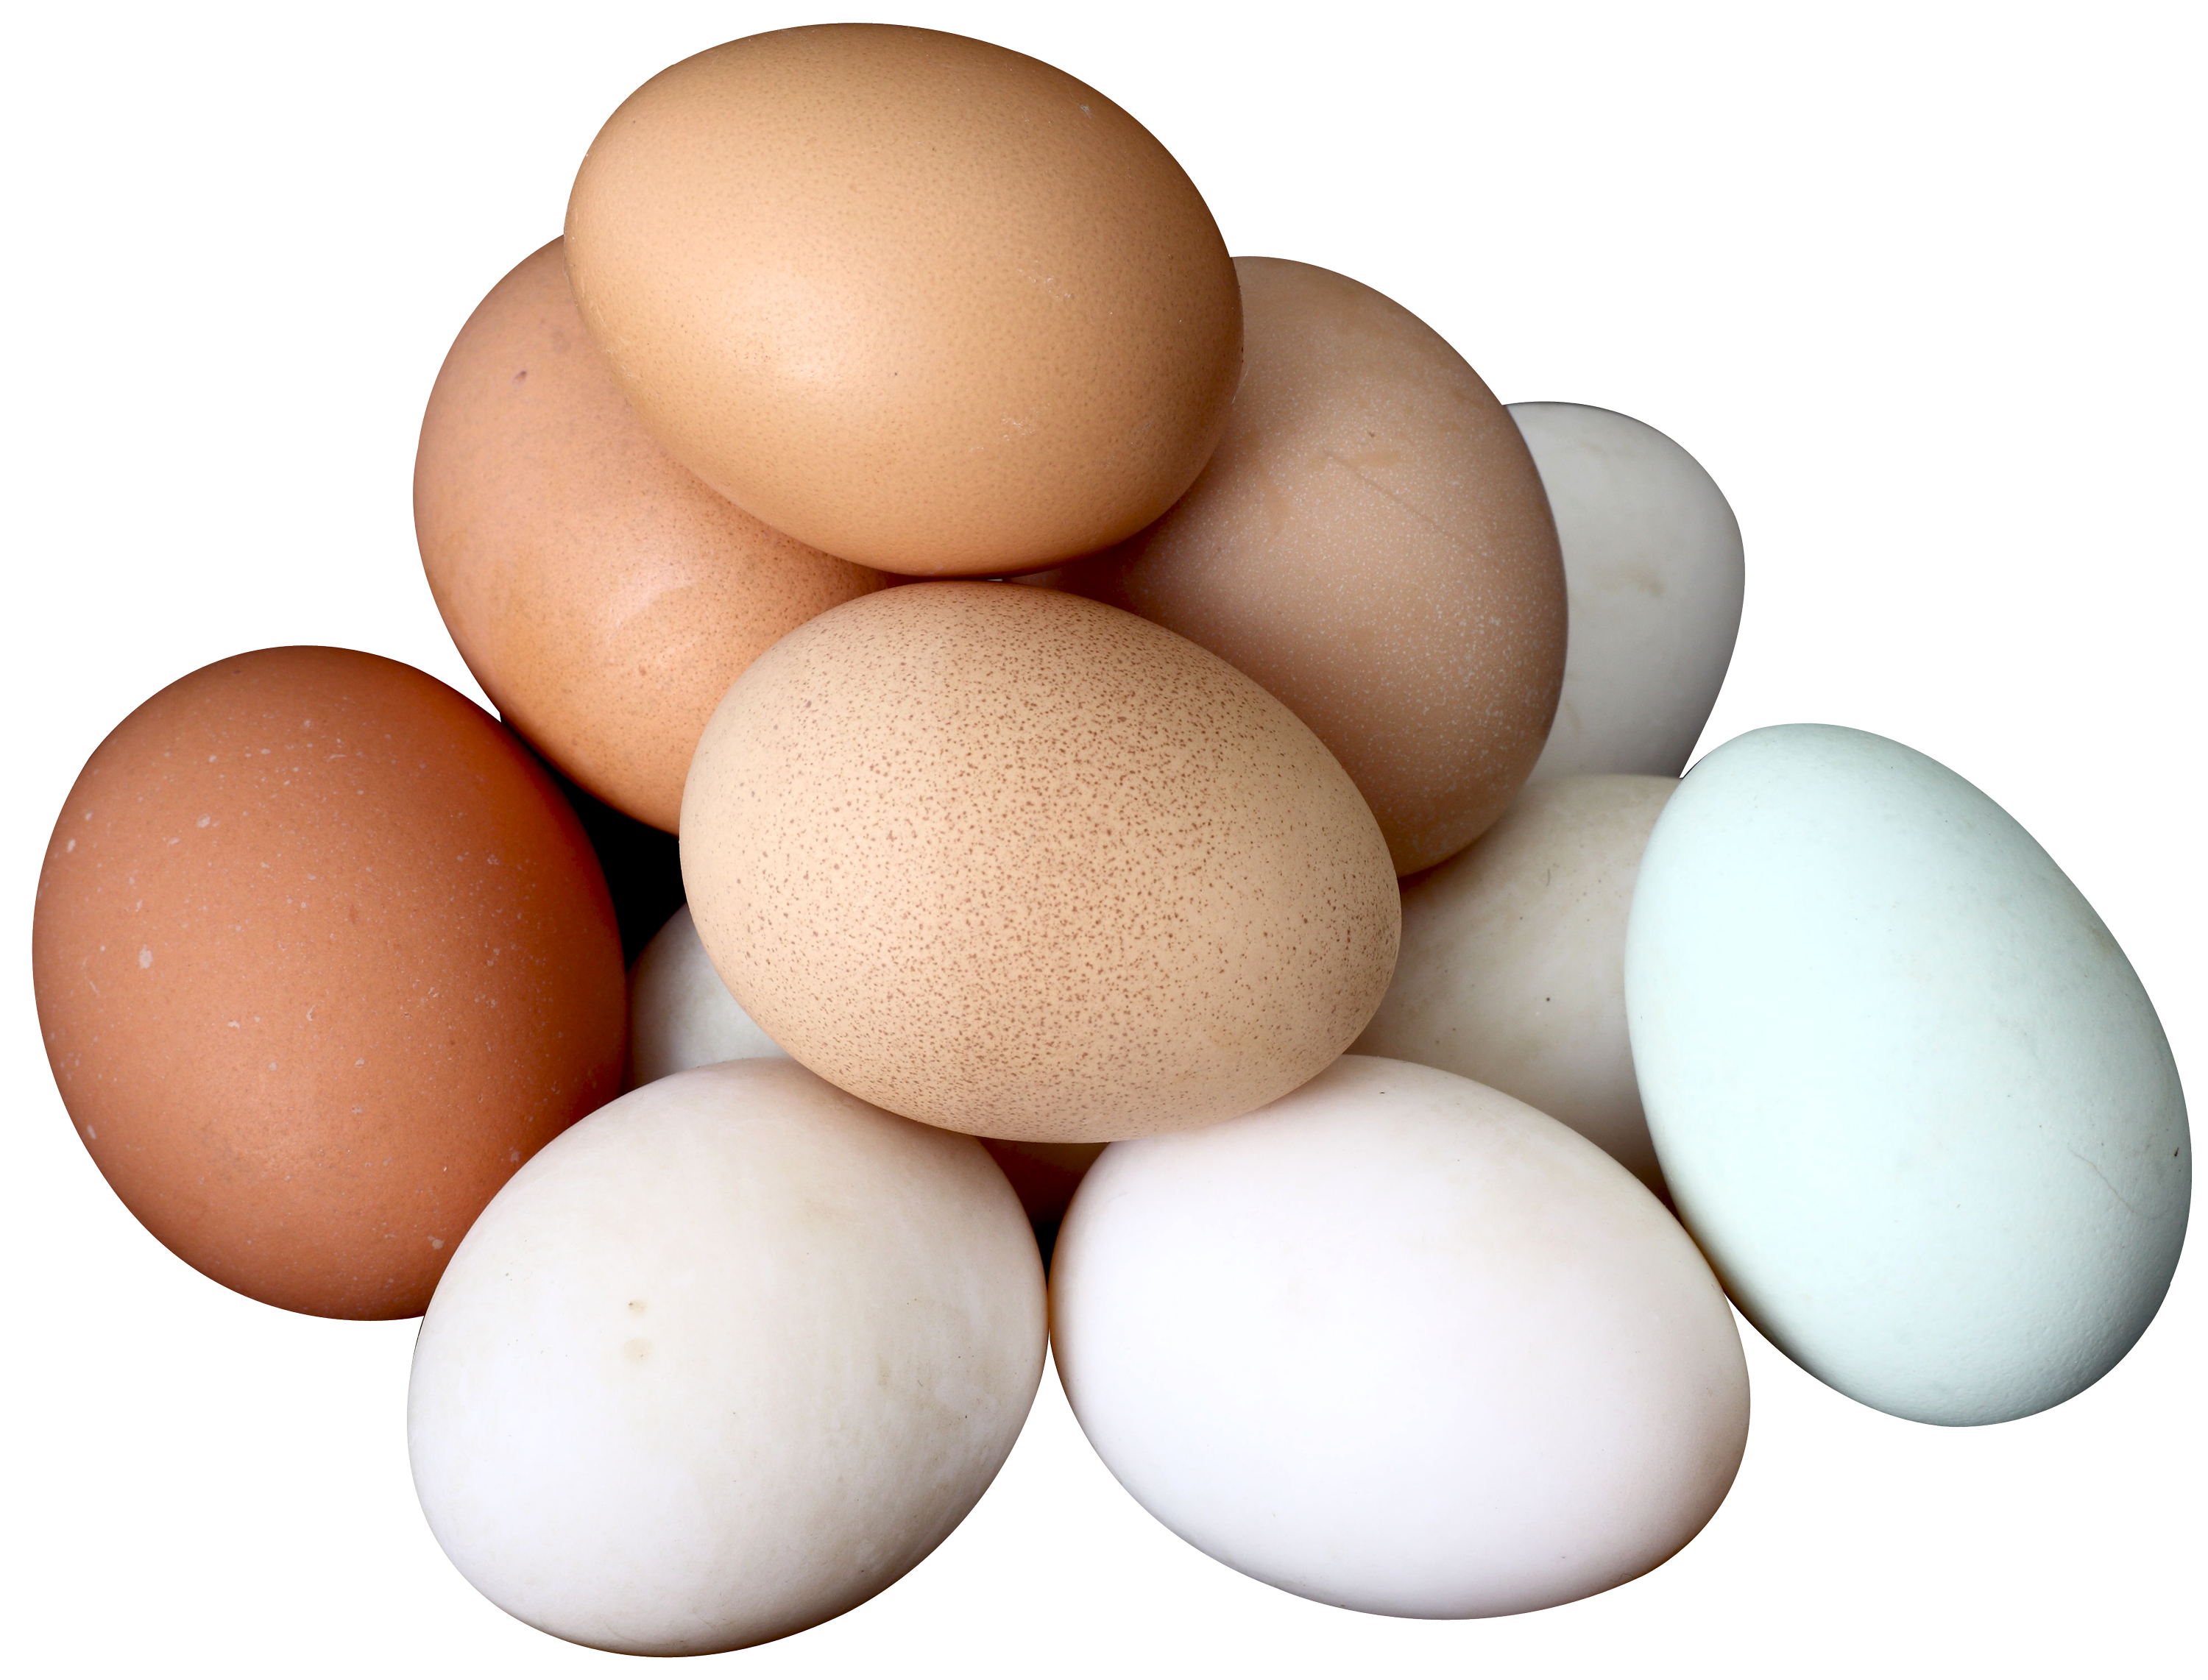 Eggs png. Image free download pictures